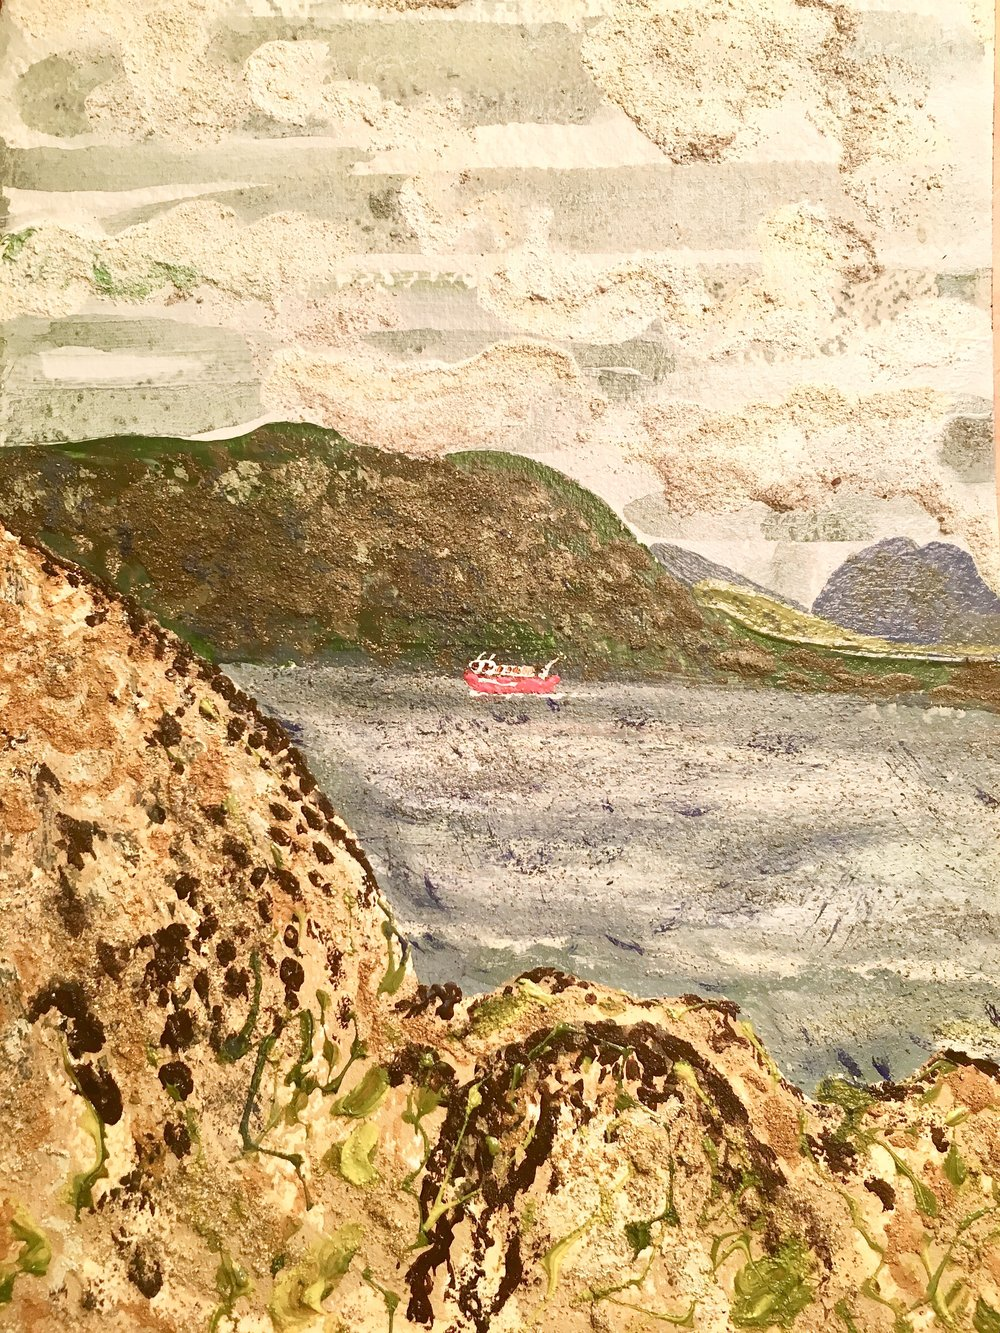 Post boat, Cleggan to Inishbofin, Co. Galway, mixed media on paper 26x18cm August 2018